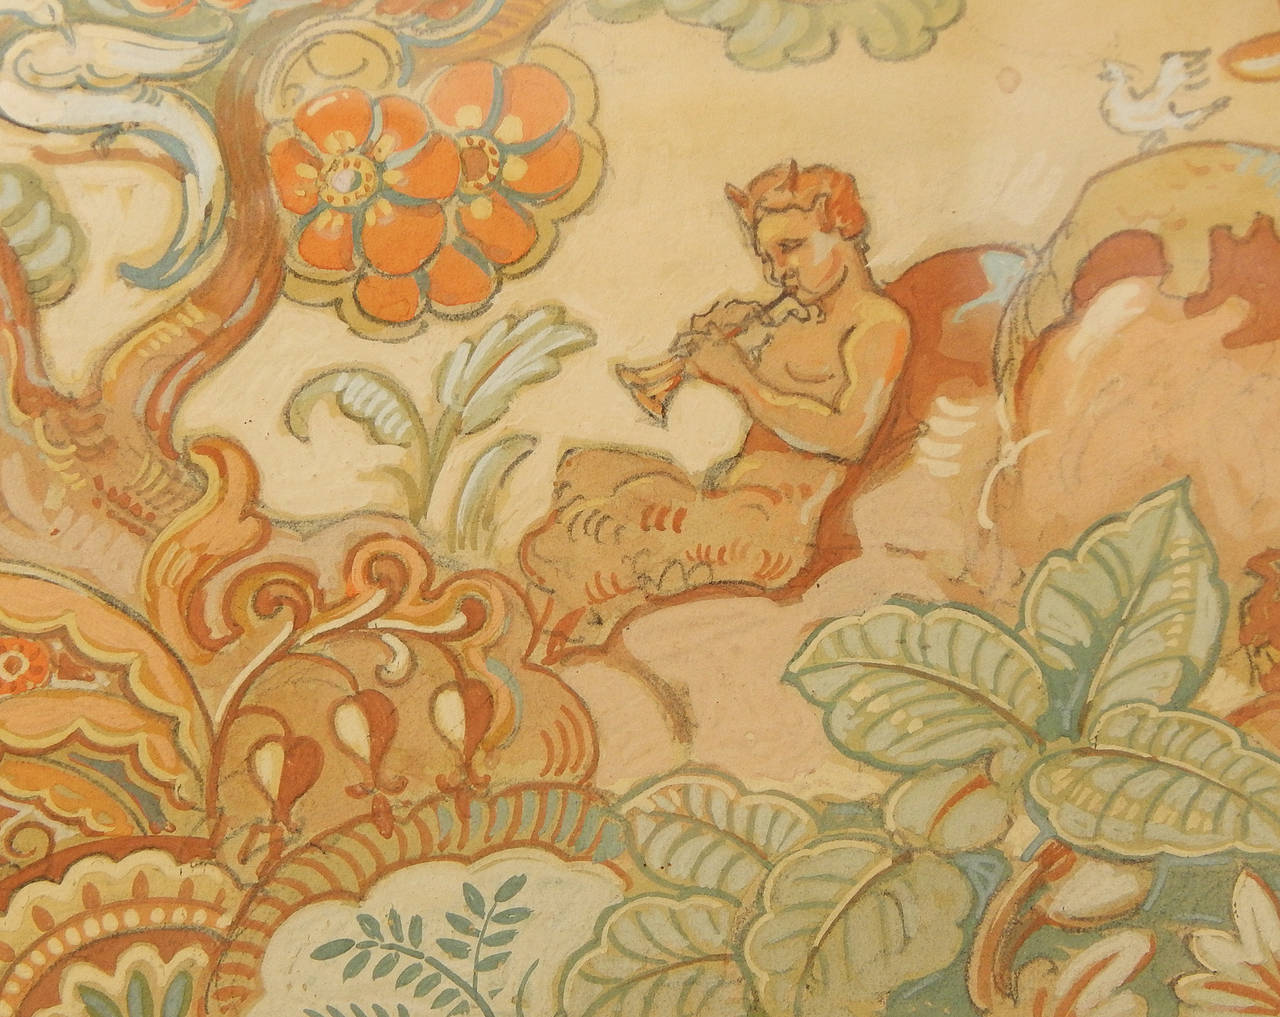 Gorgeously detailed and voluptuously painted, this superb depiction of pan playing his pipes in a paradise full of extravagant life -- including rabbits, squirrels, crested birds and stylized, Art Deco foliage -- was created by Einar Petersen, a